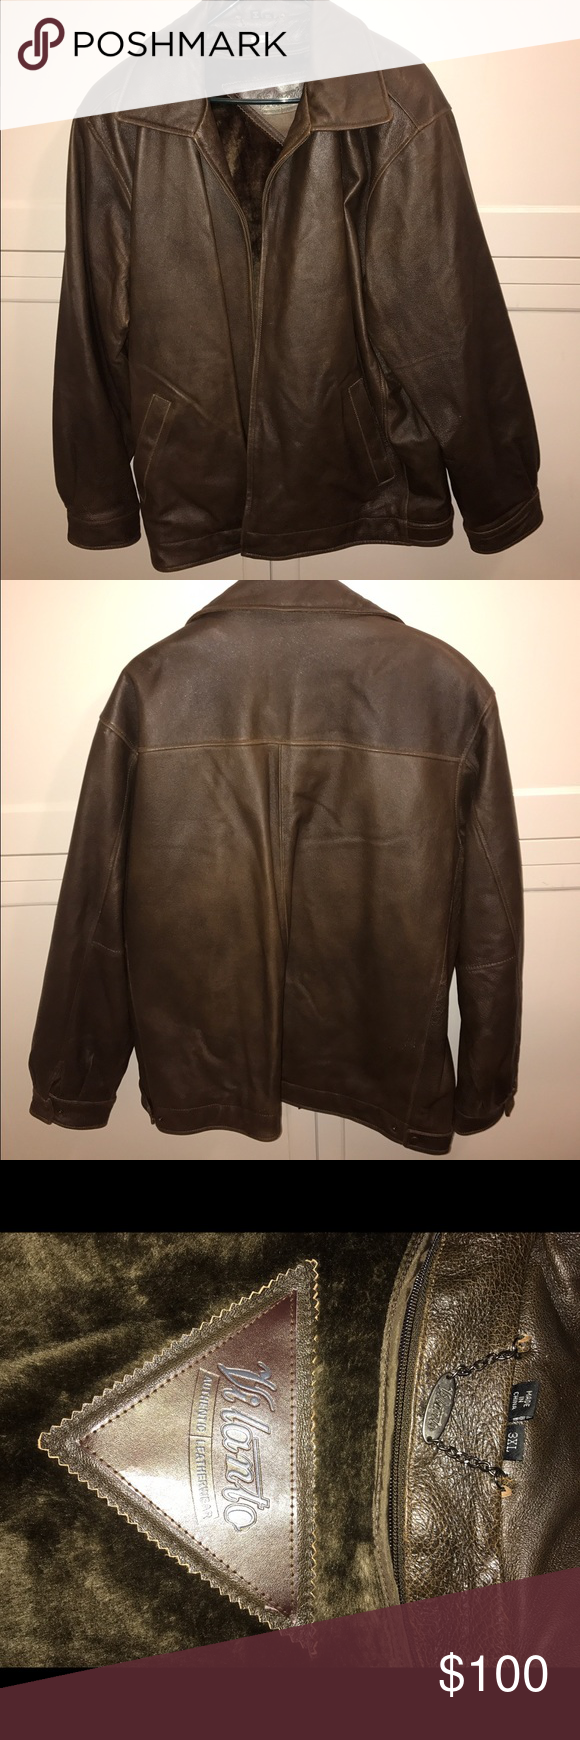 Nwot Vilanto Brown Leather Jacket This Leather Jacket Is Brand New Just Missing The Tags It Has A Removable Faux F Brown Leather Jacket Leather Jacket Jackets [ 1740 x 580 Pixel ]